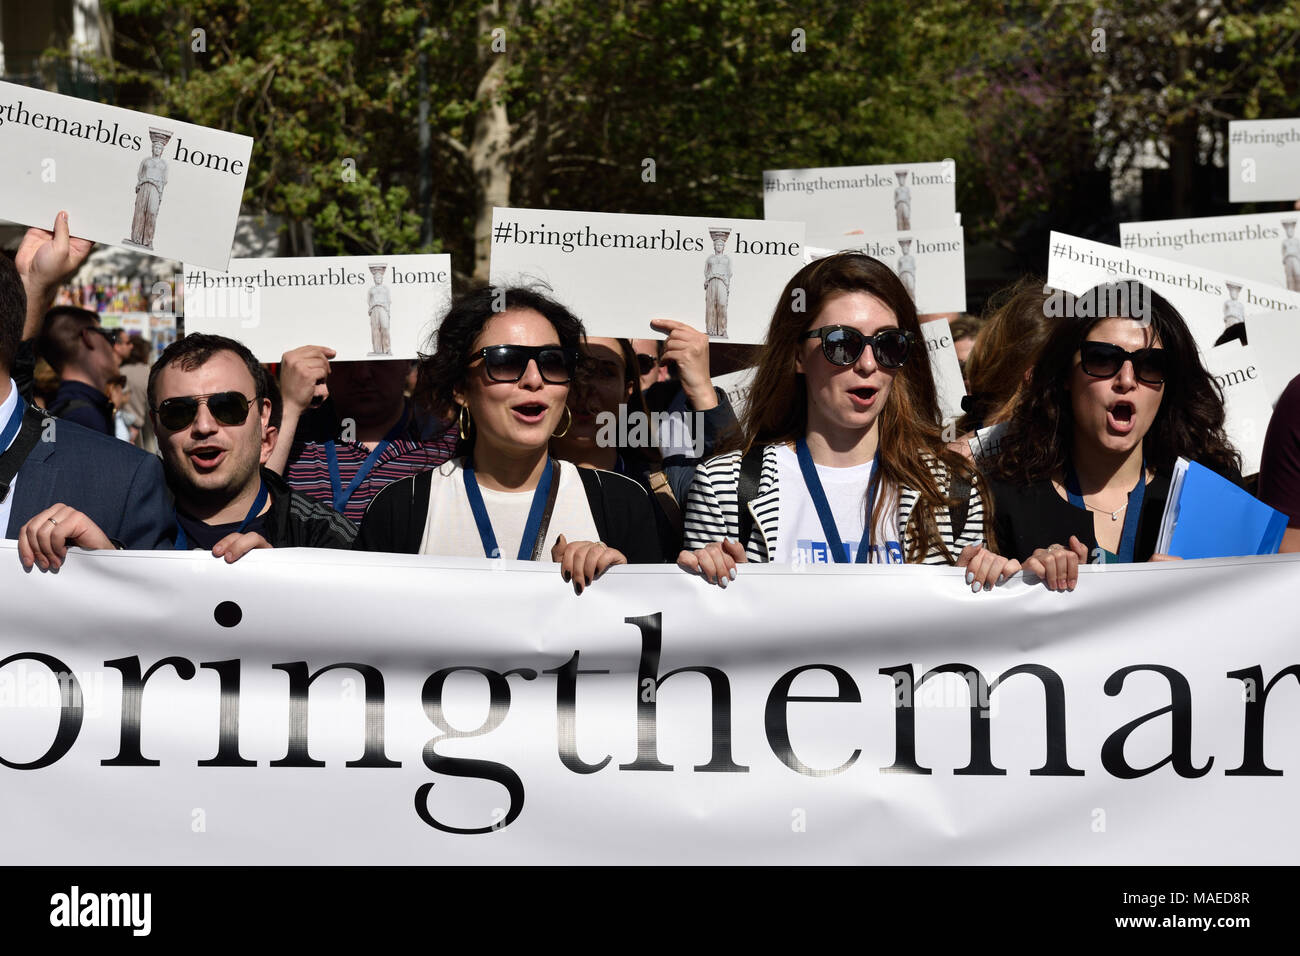 Athens, Greece, 1st April, 2018. Members of the Hellenic Youth in Action, a Greek diaspora youth forum, march holding banners and placards demanding the return of the Parthenon marbles in Athens, Greece. Credit: Nicolas Koutsokostas/Alamy Live News. - Stock Image